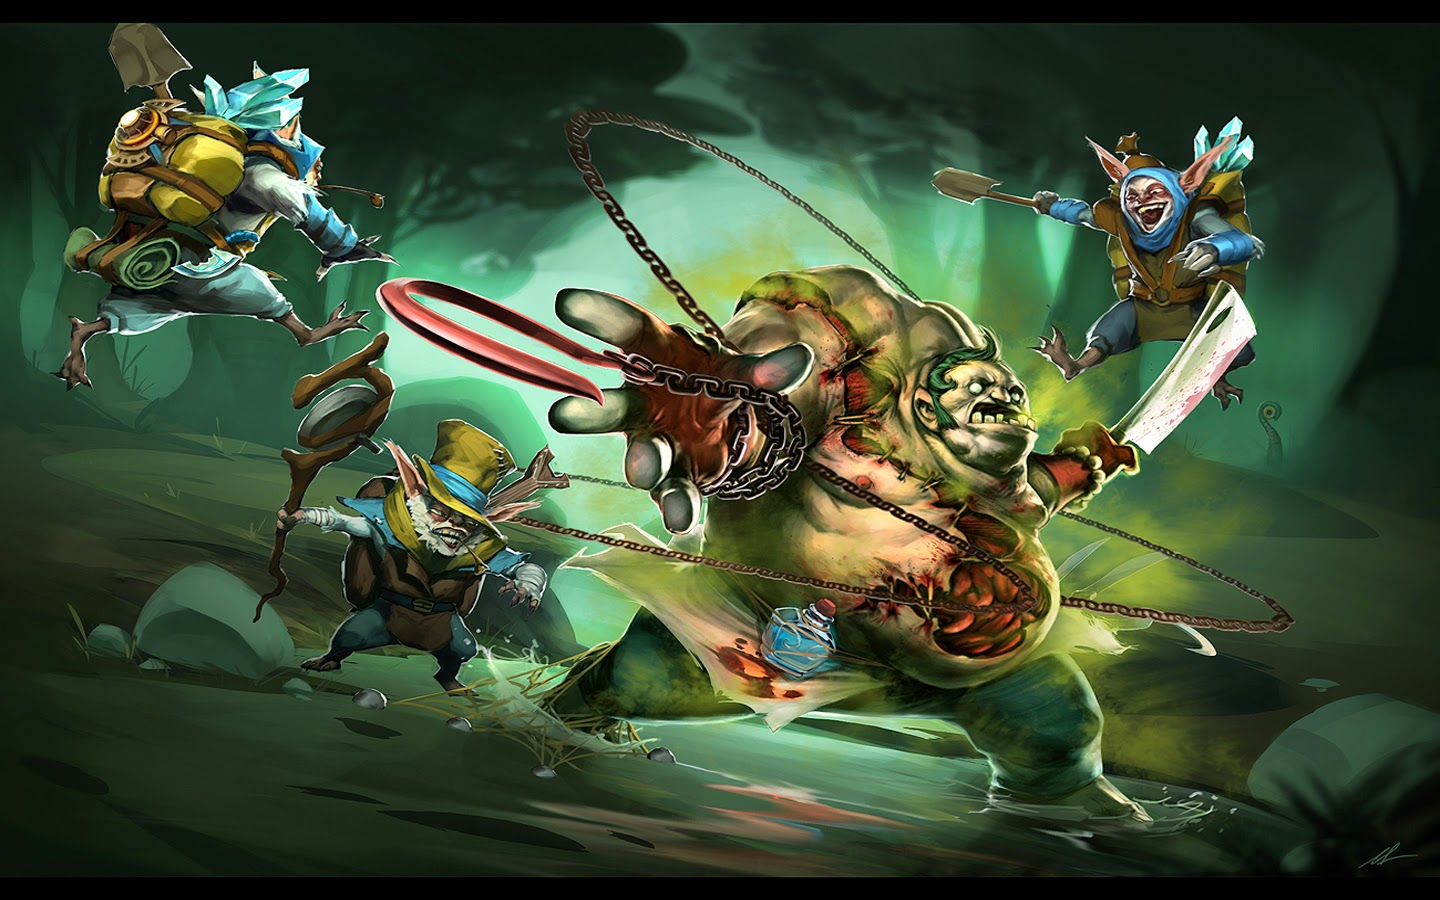 mepoo geomancer vs pudge butcher clash dota 2 hero hd wallpaper 1440x900 widescreen a12.